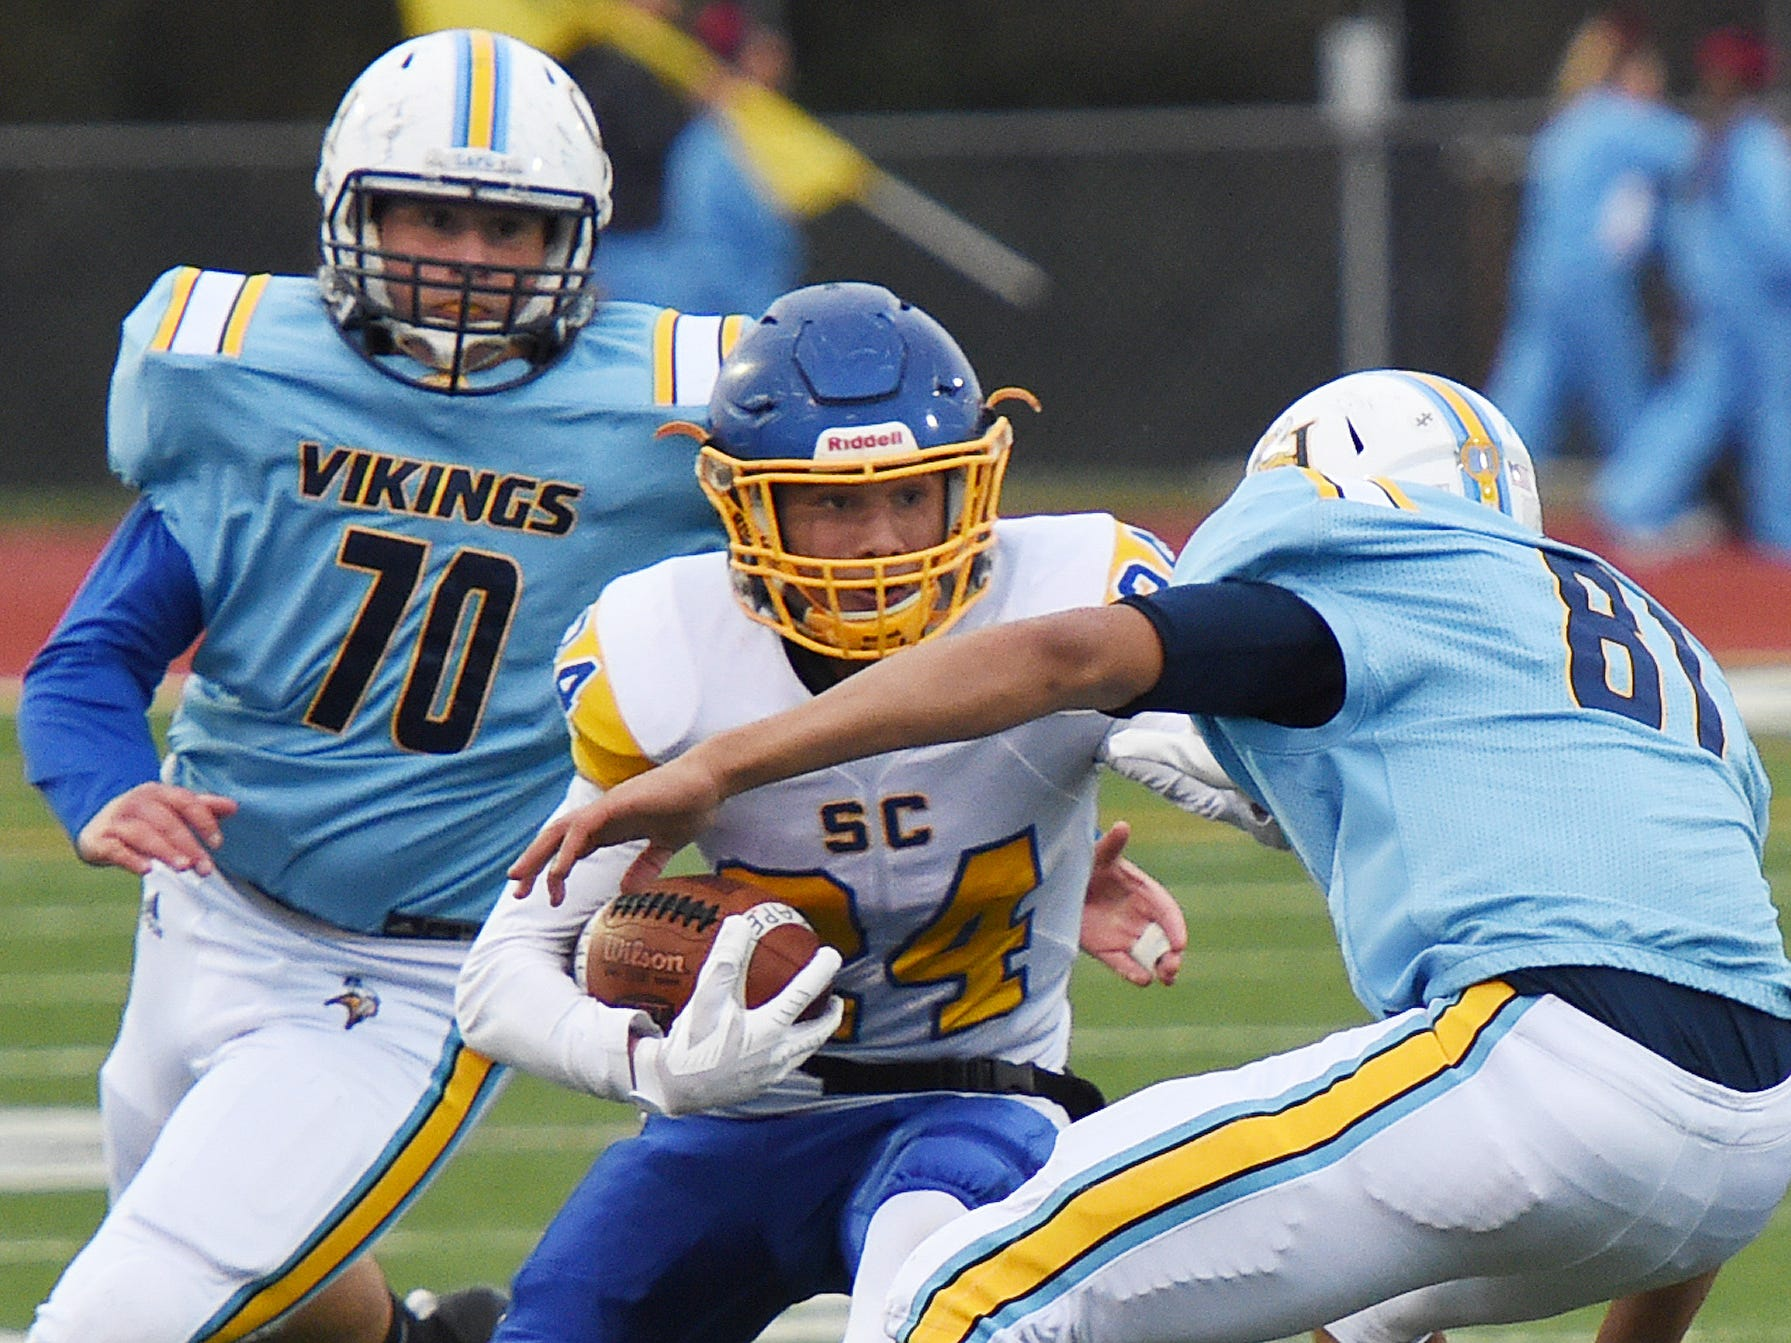 Sussex Central's Isaiah Barnes moves the ball as Cape's  Ben Weathersby, 81, attempts tackle during their game Oct. 26, 2018.